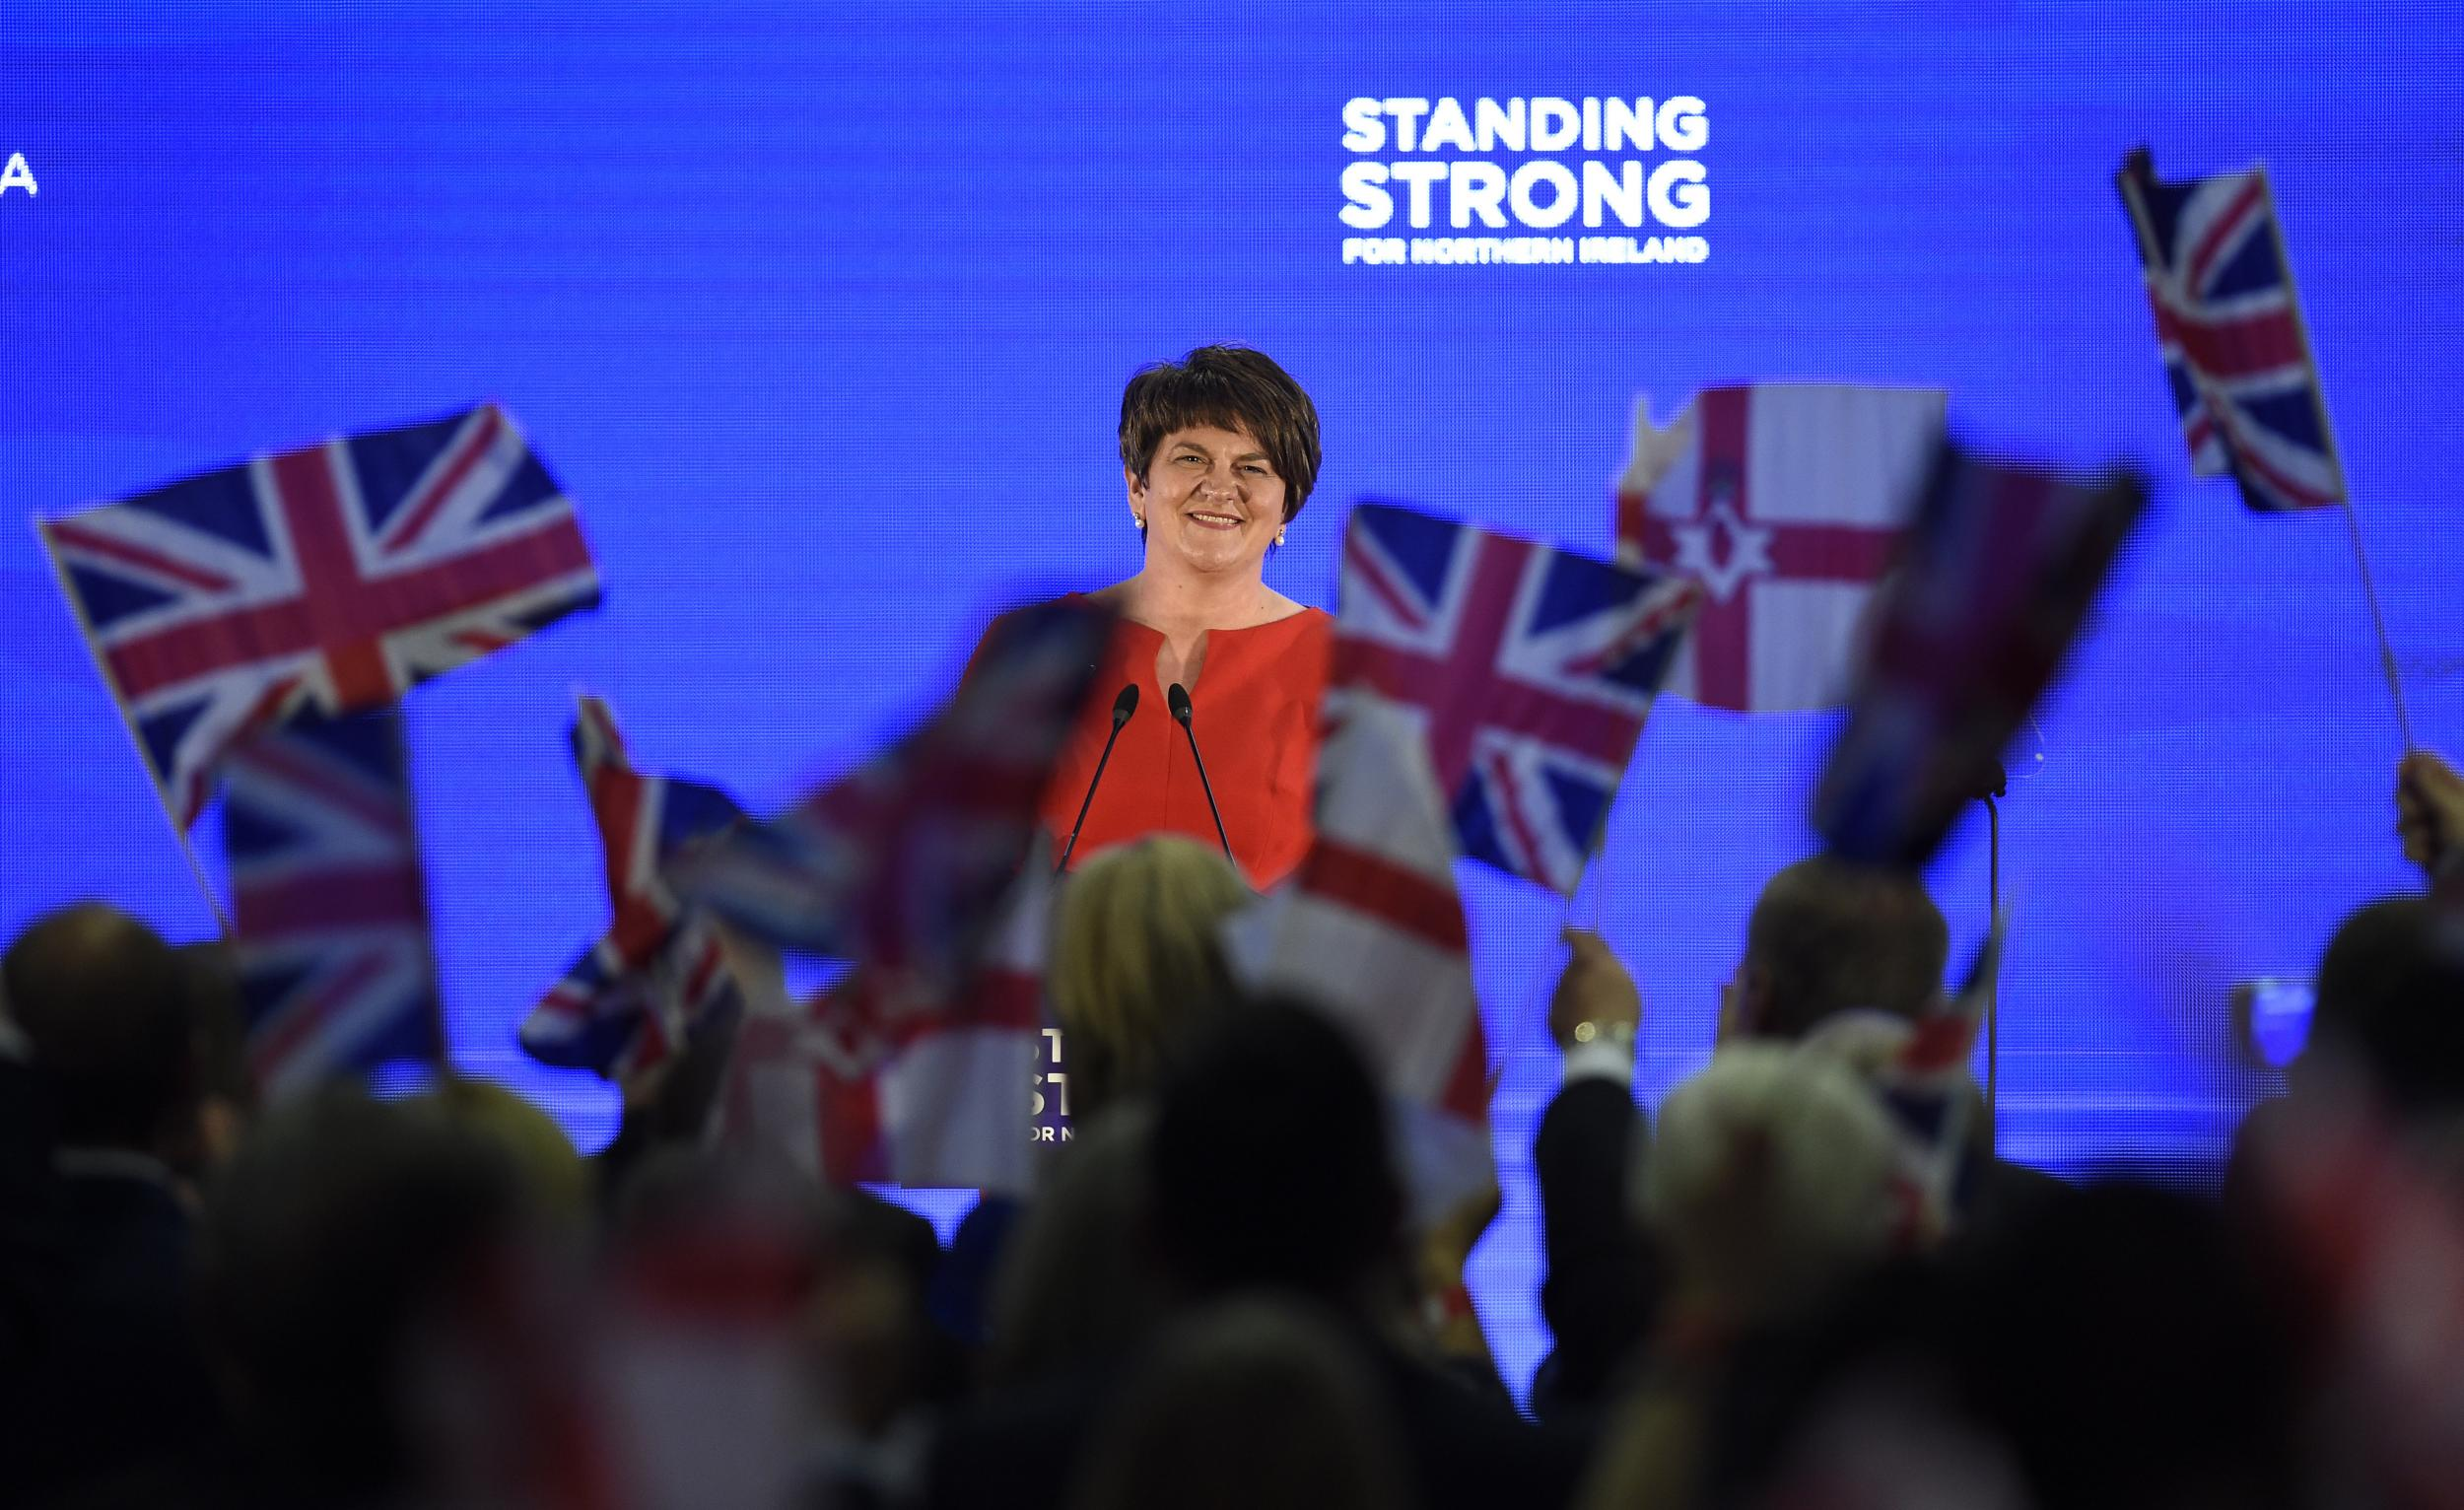 'I went to the DUP Conference and what I saw was extremely disturbing'